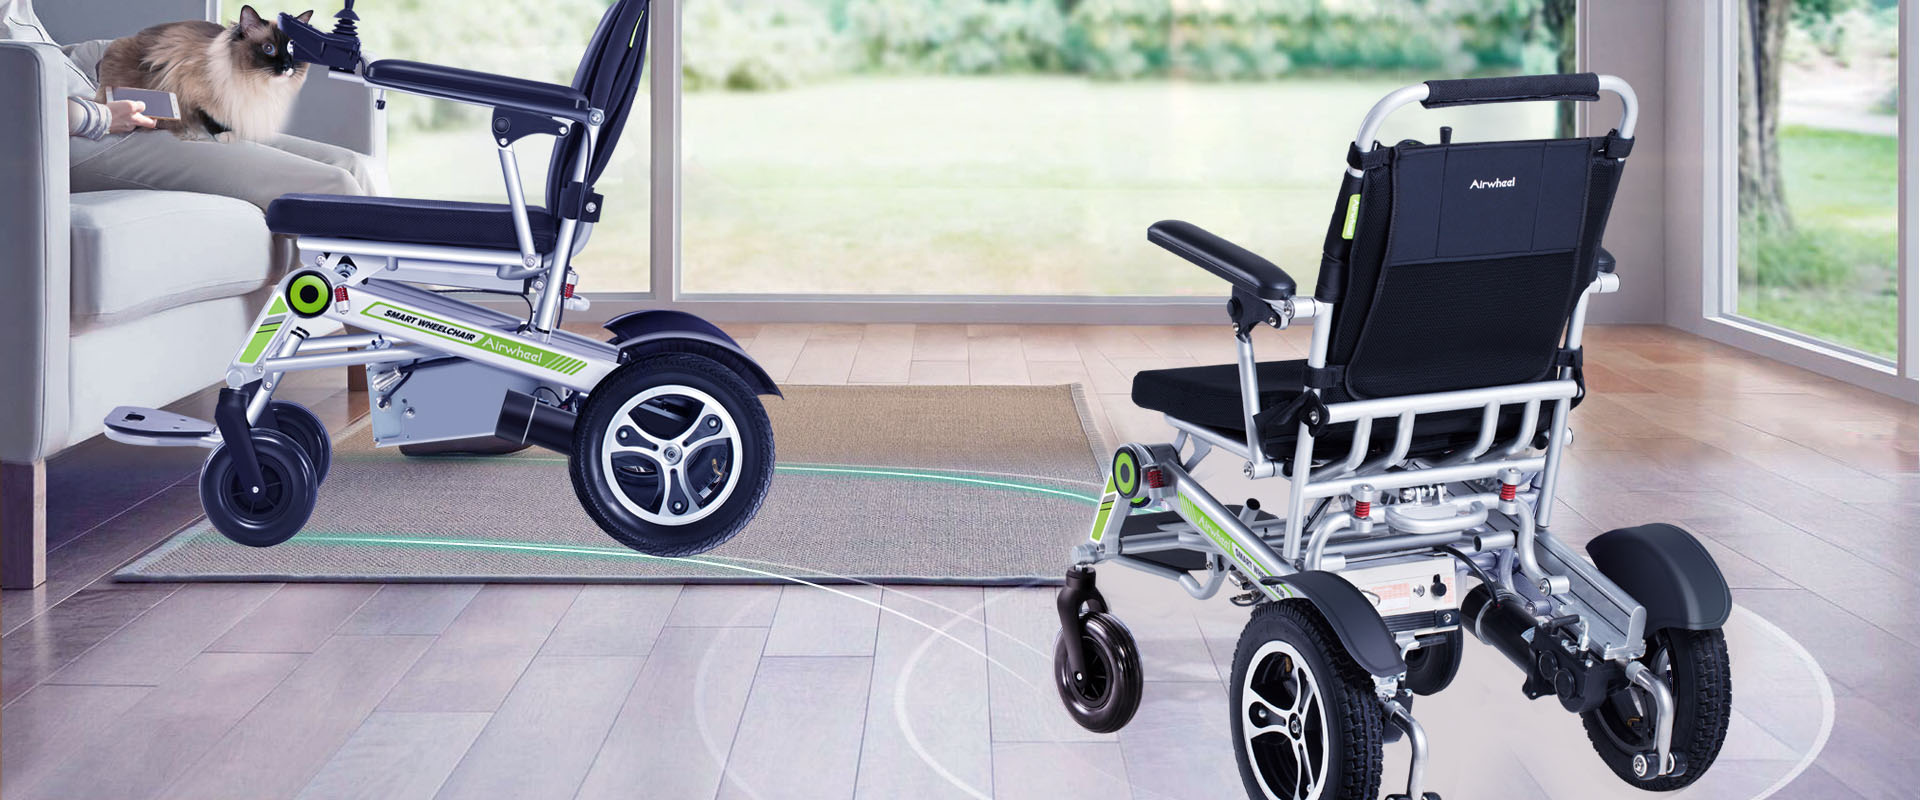 Airwheel H3S auto-following wheelchair